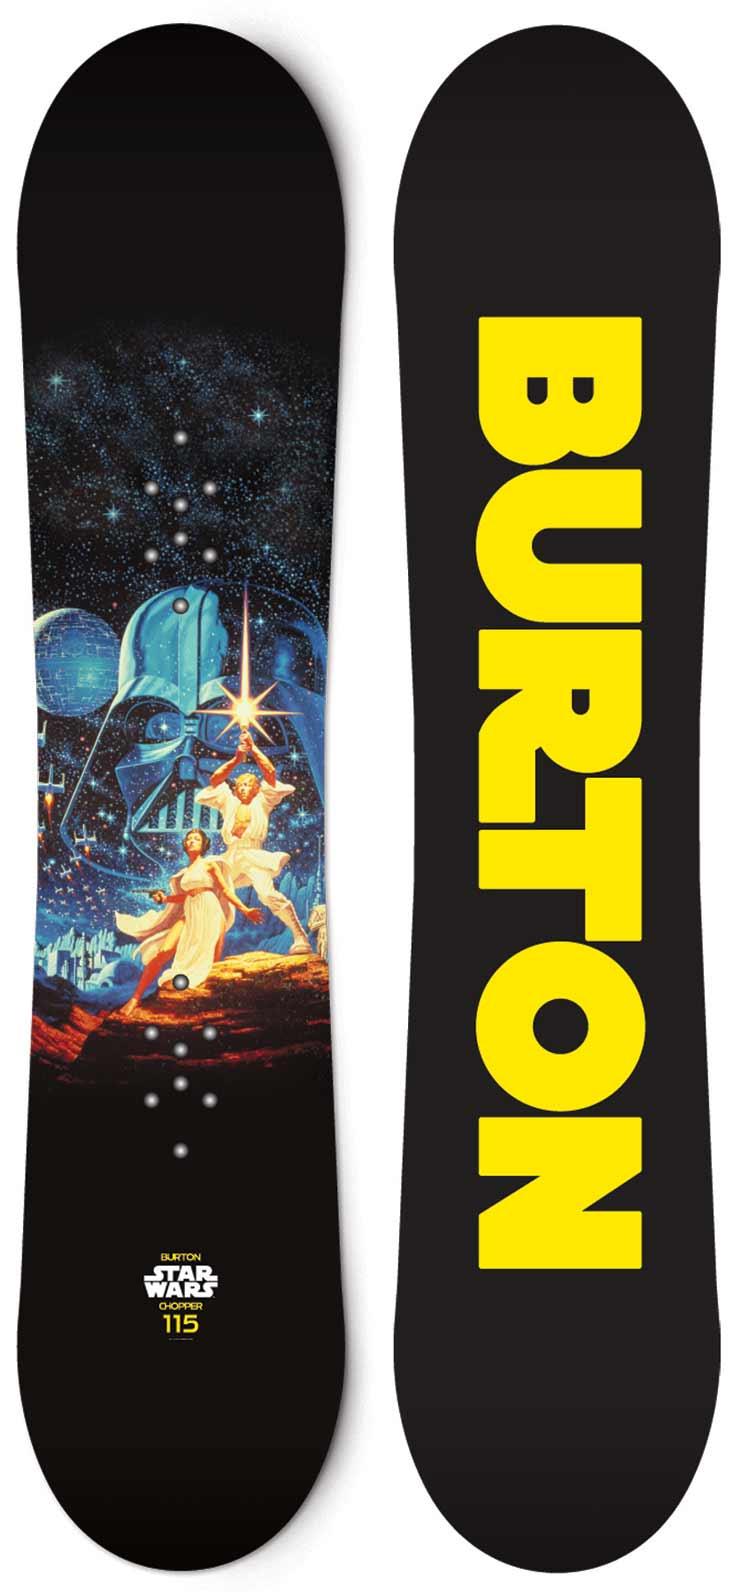 82008-Burton_STARWARS_Chopper115.jpg